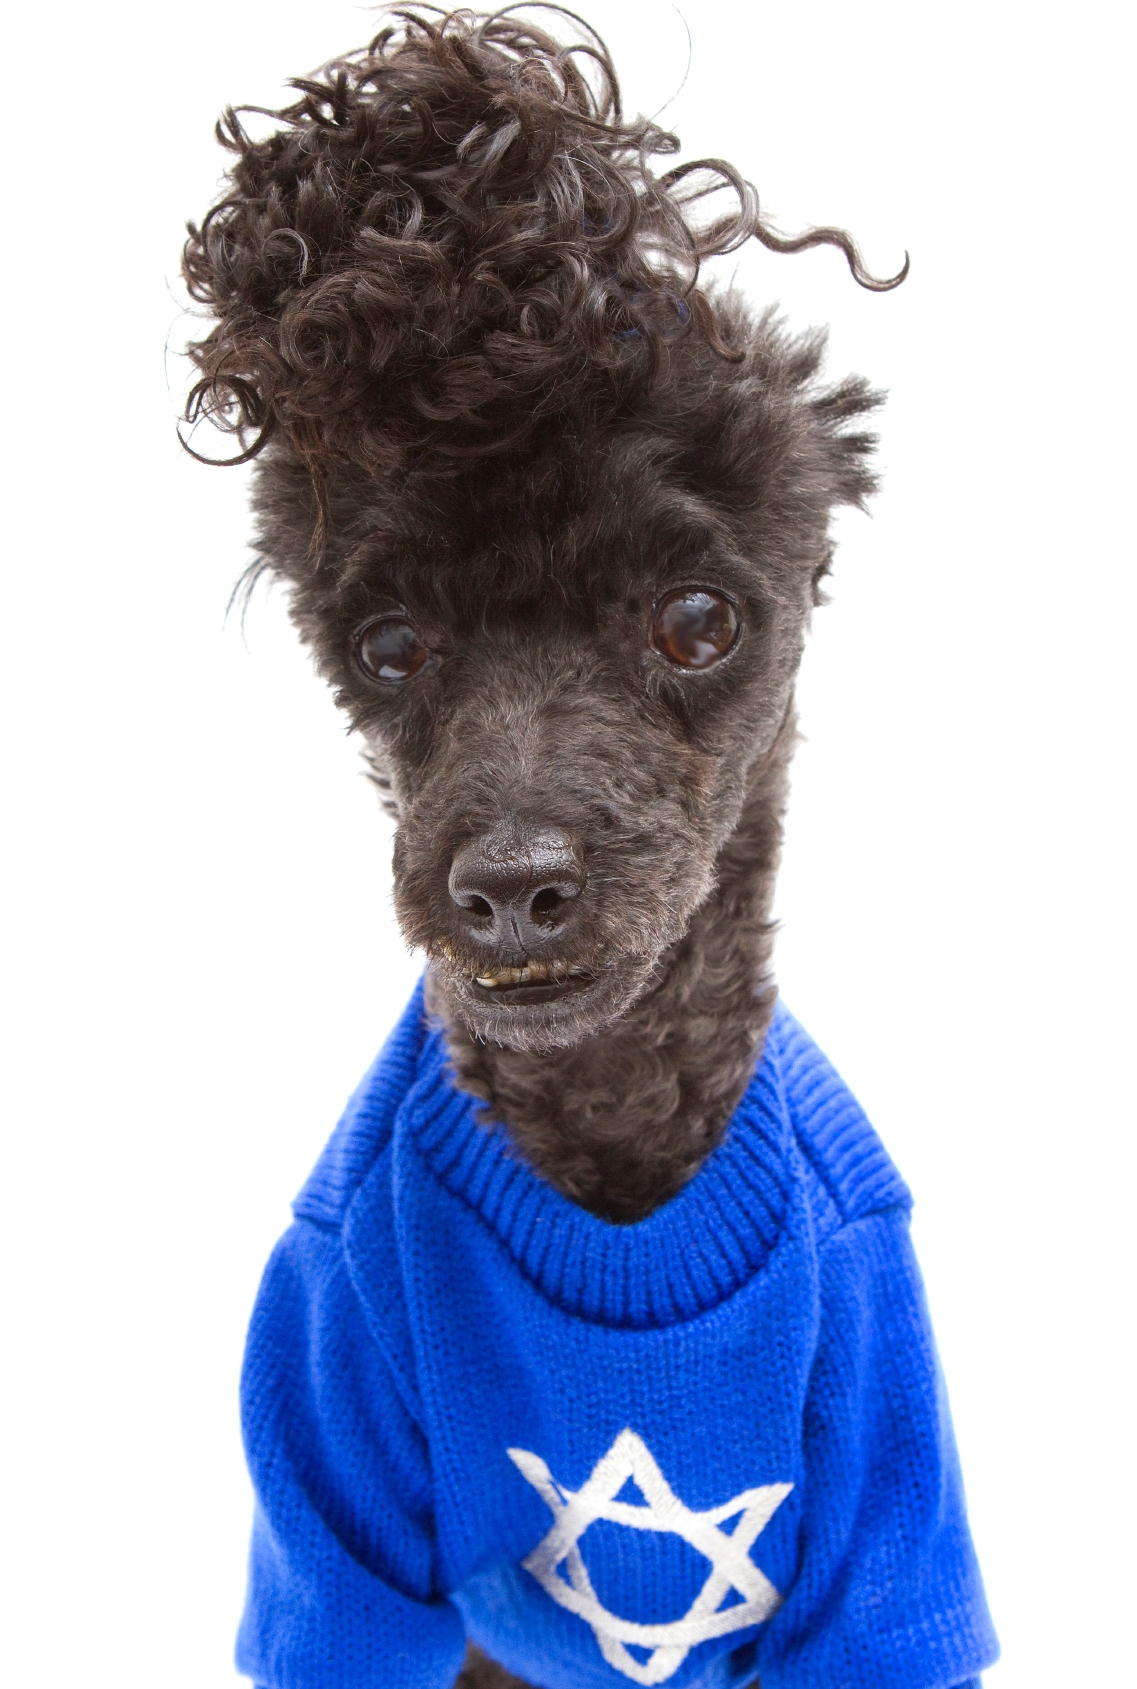 poodle with hanukkah sweater